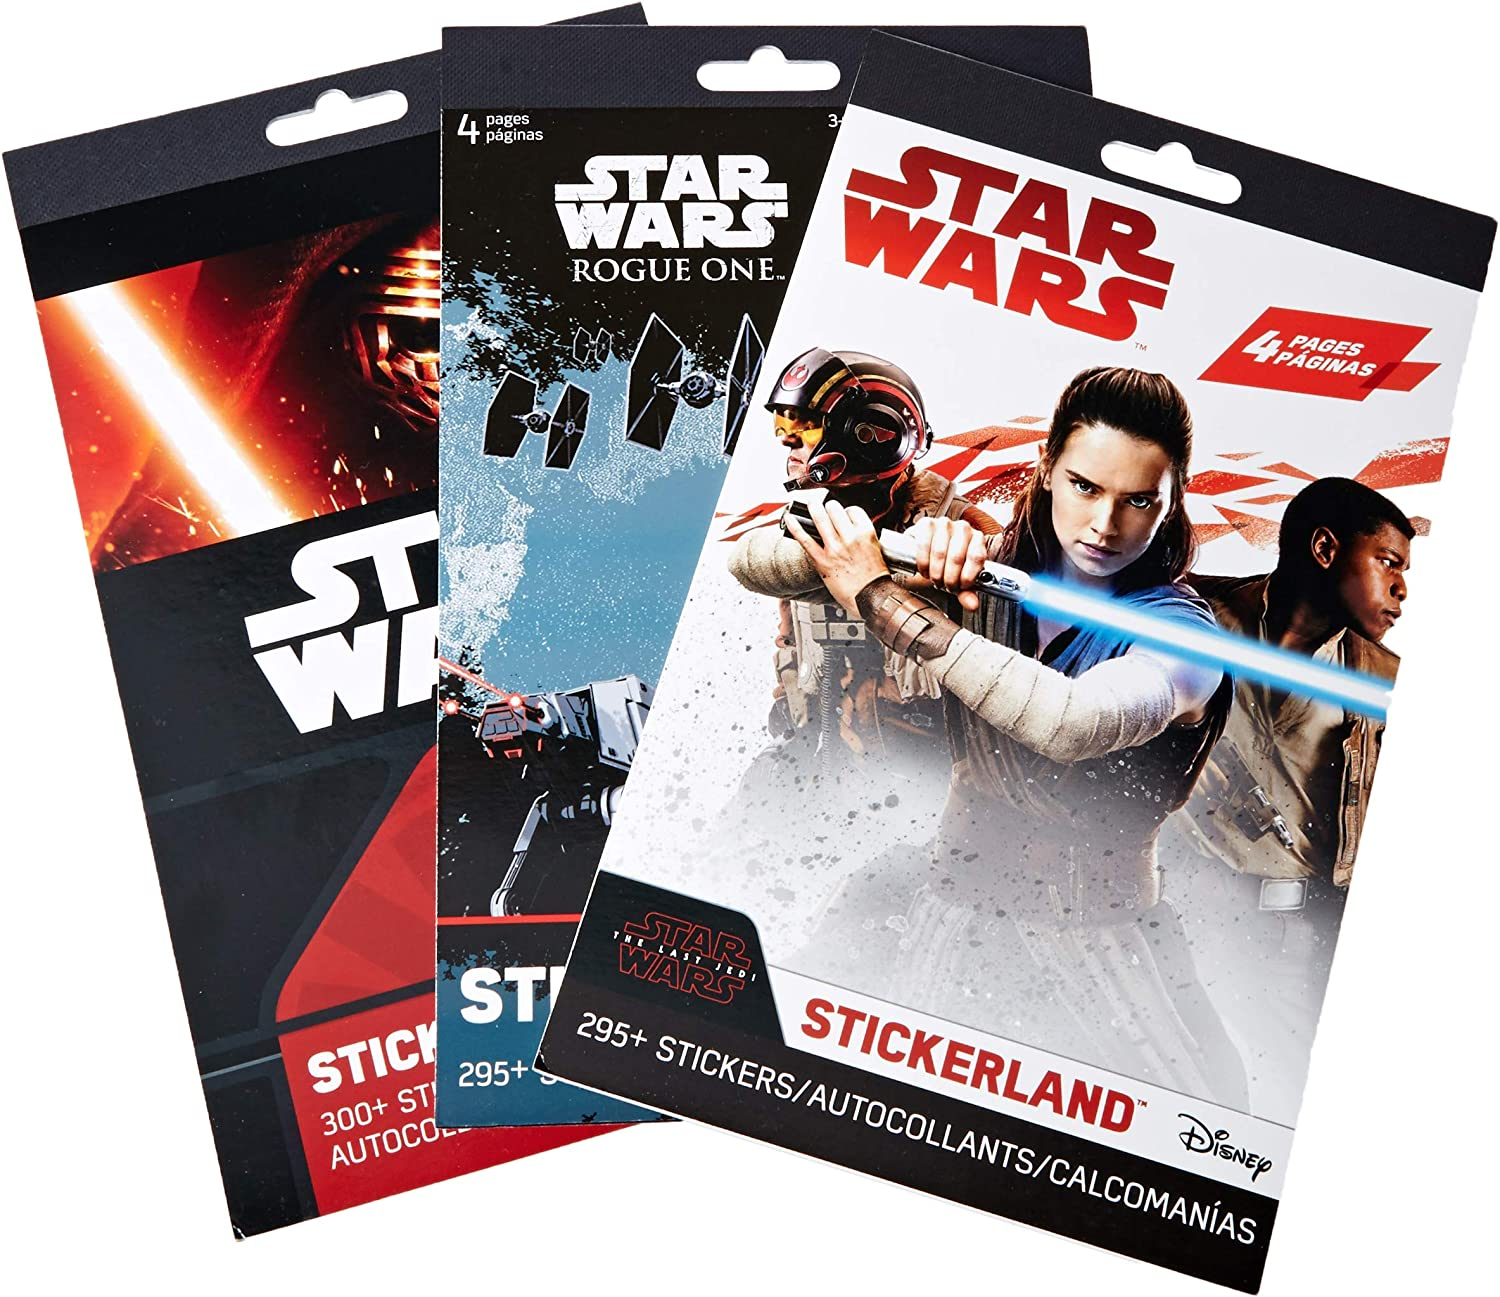 900 12 Sticker Sheets Perfect for Star Wars Party Favors Disney Studios Stickers Featuring Your Favorite Star Wars Characters Star Wars Stickers Variety Pack